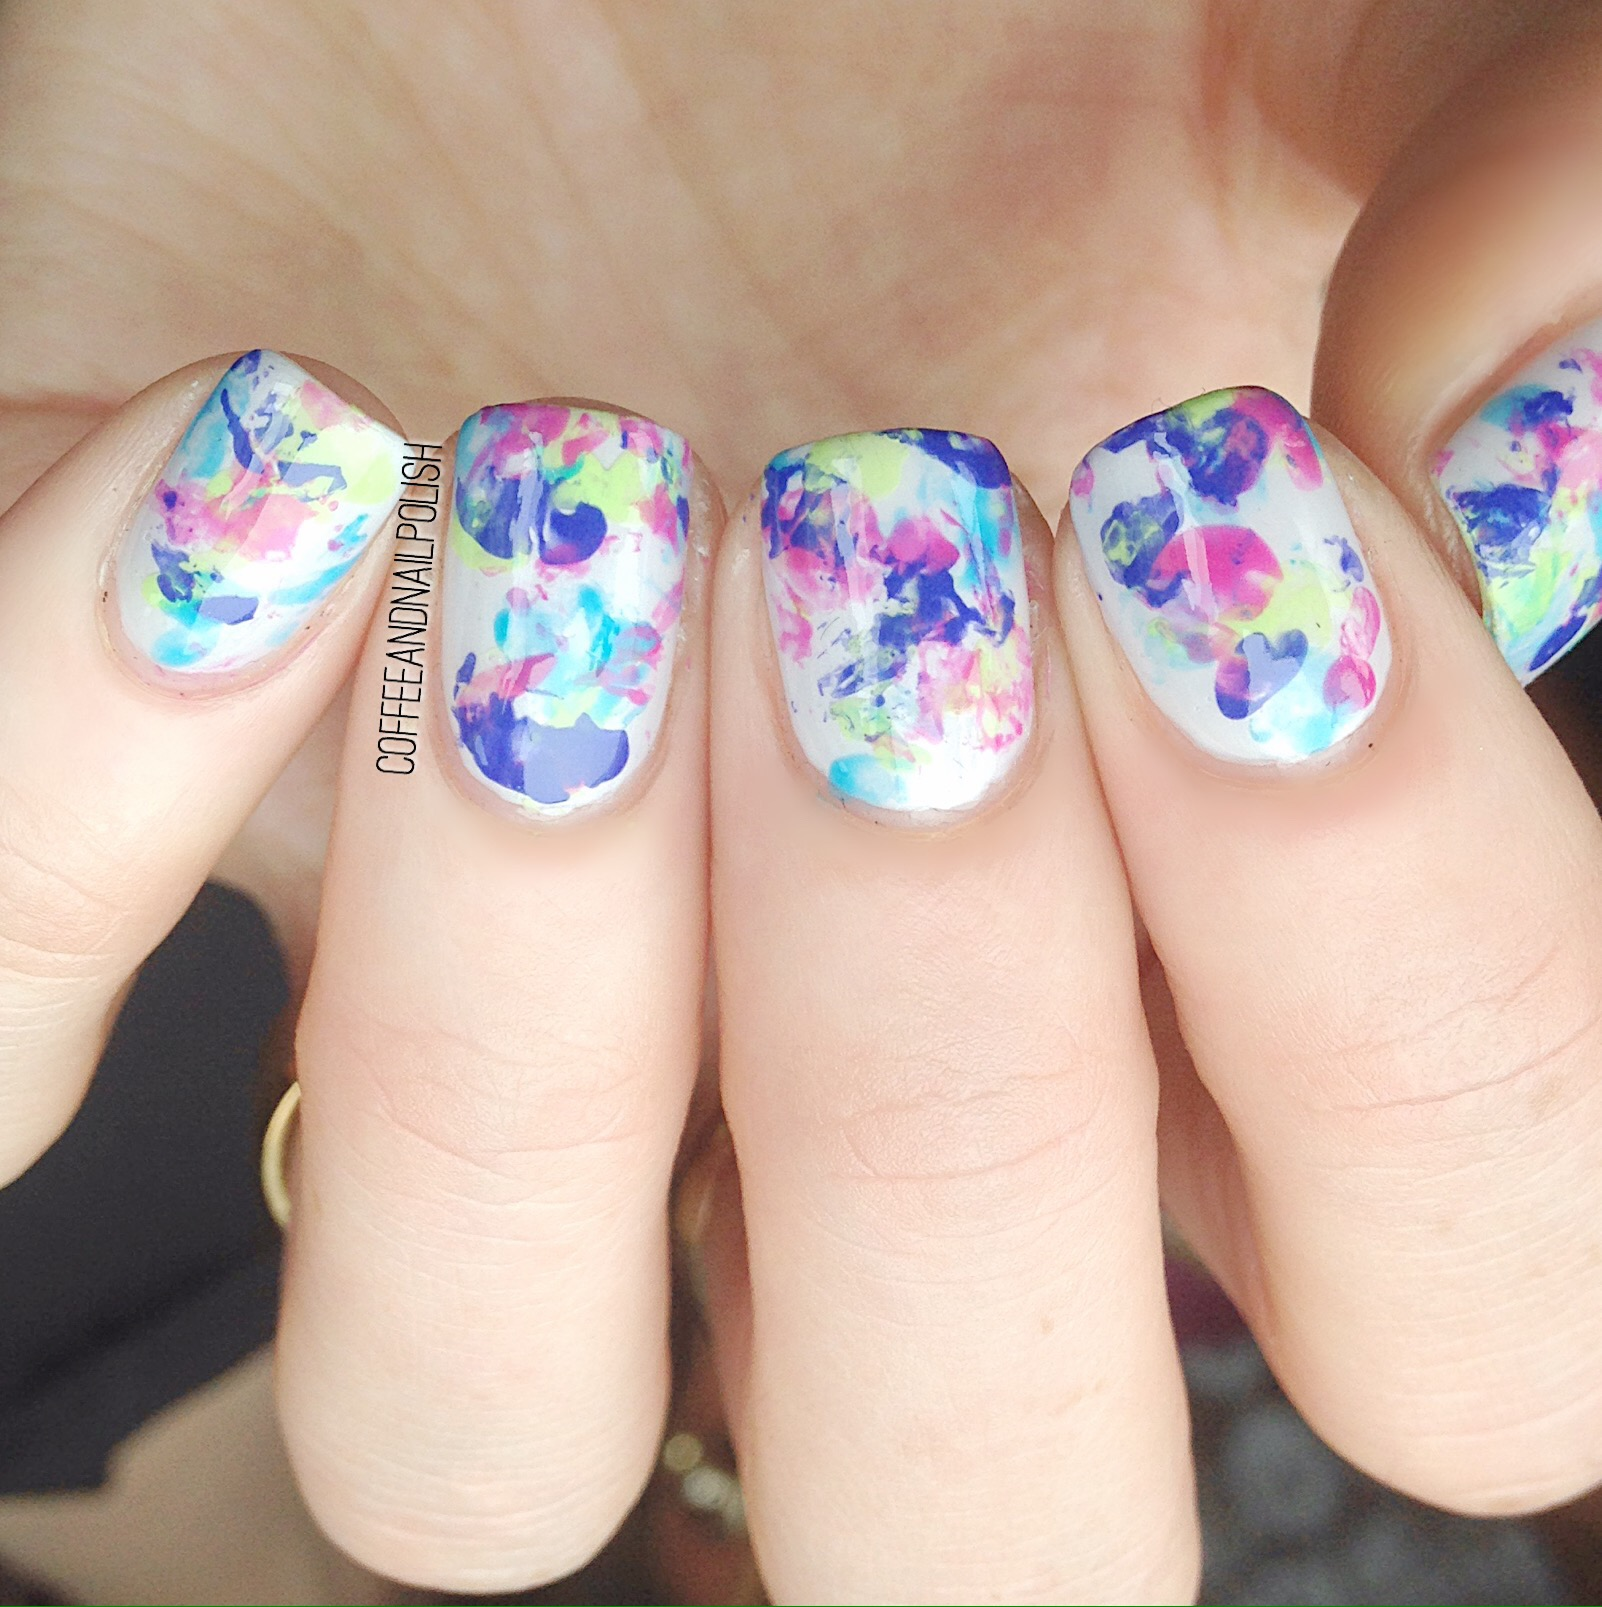 Saran wrap splatter nails coffee nail polish the colours were so bright and vibrant i decided to combine them together in a saran wrap splatter design prinsesfo Choice Image